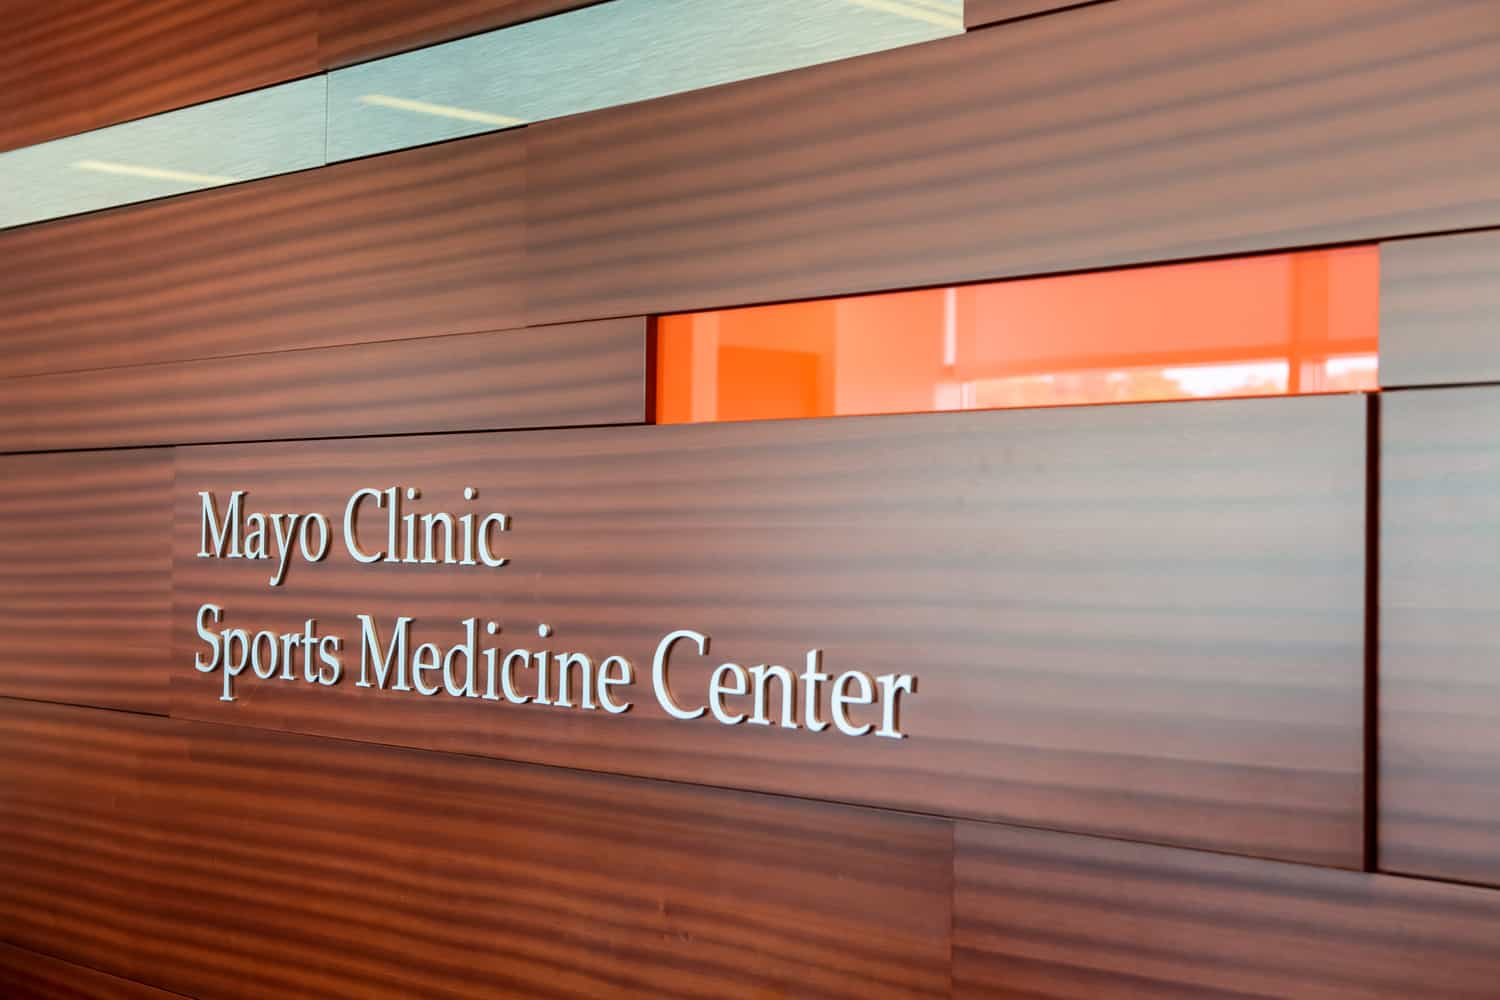 Mayo Clinic Sports Medicine Center